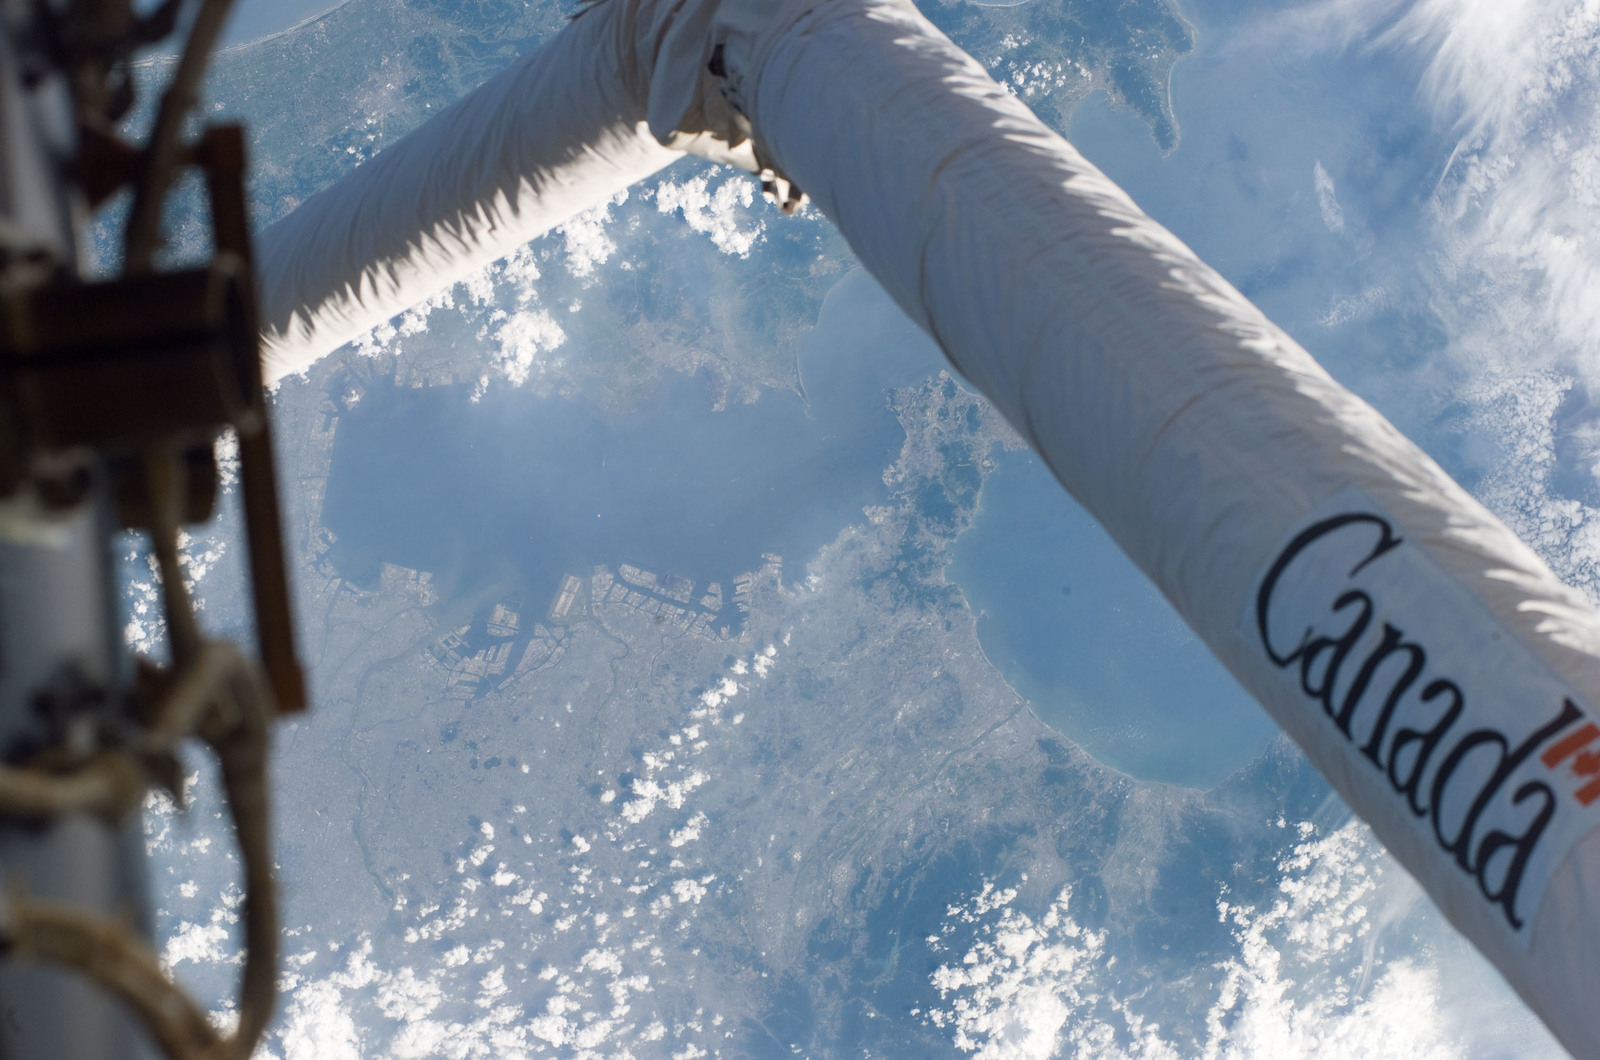 S114E7514 - STS-114 - SSRMS Canadarm 2